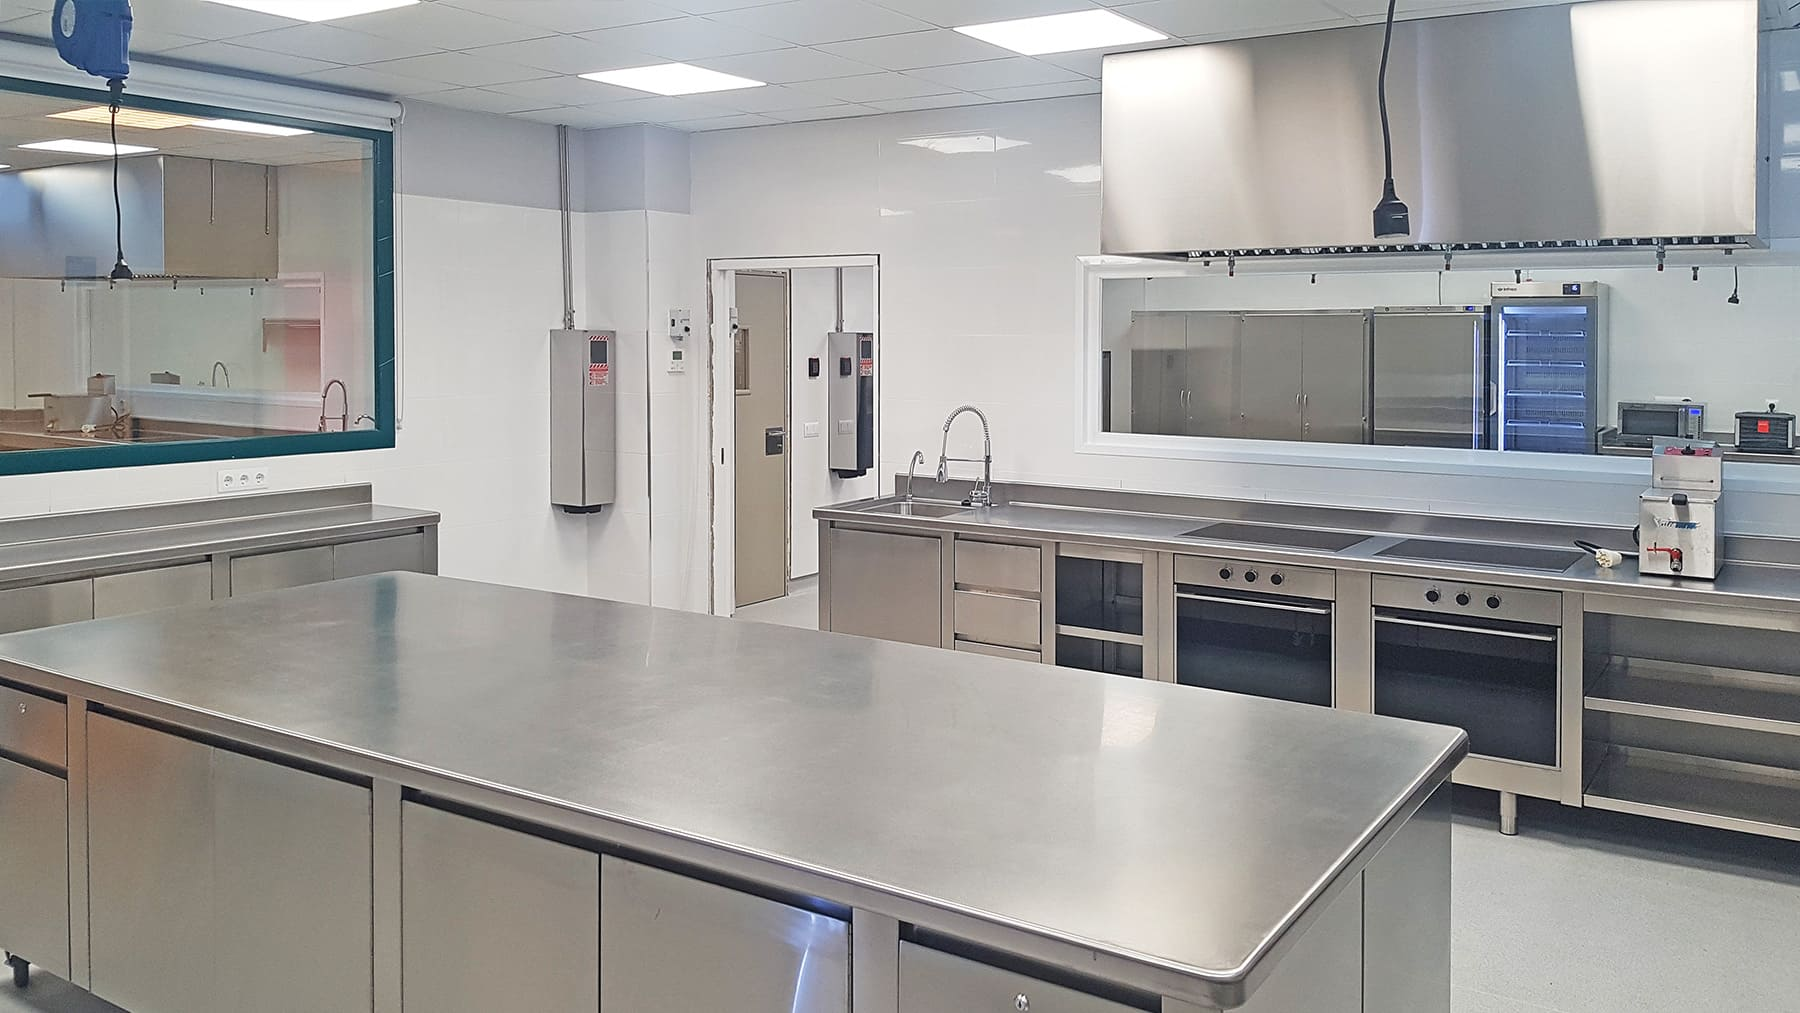 Cocina Industrial y Office Universidad Europea de Madrid - SERHS Projects